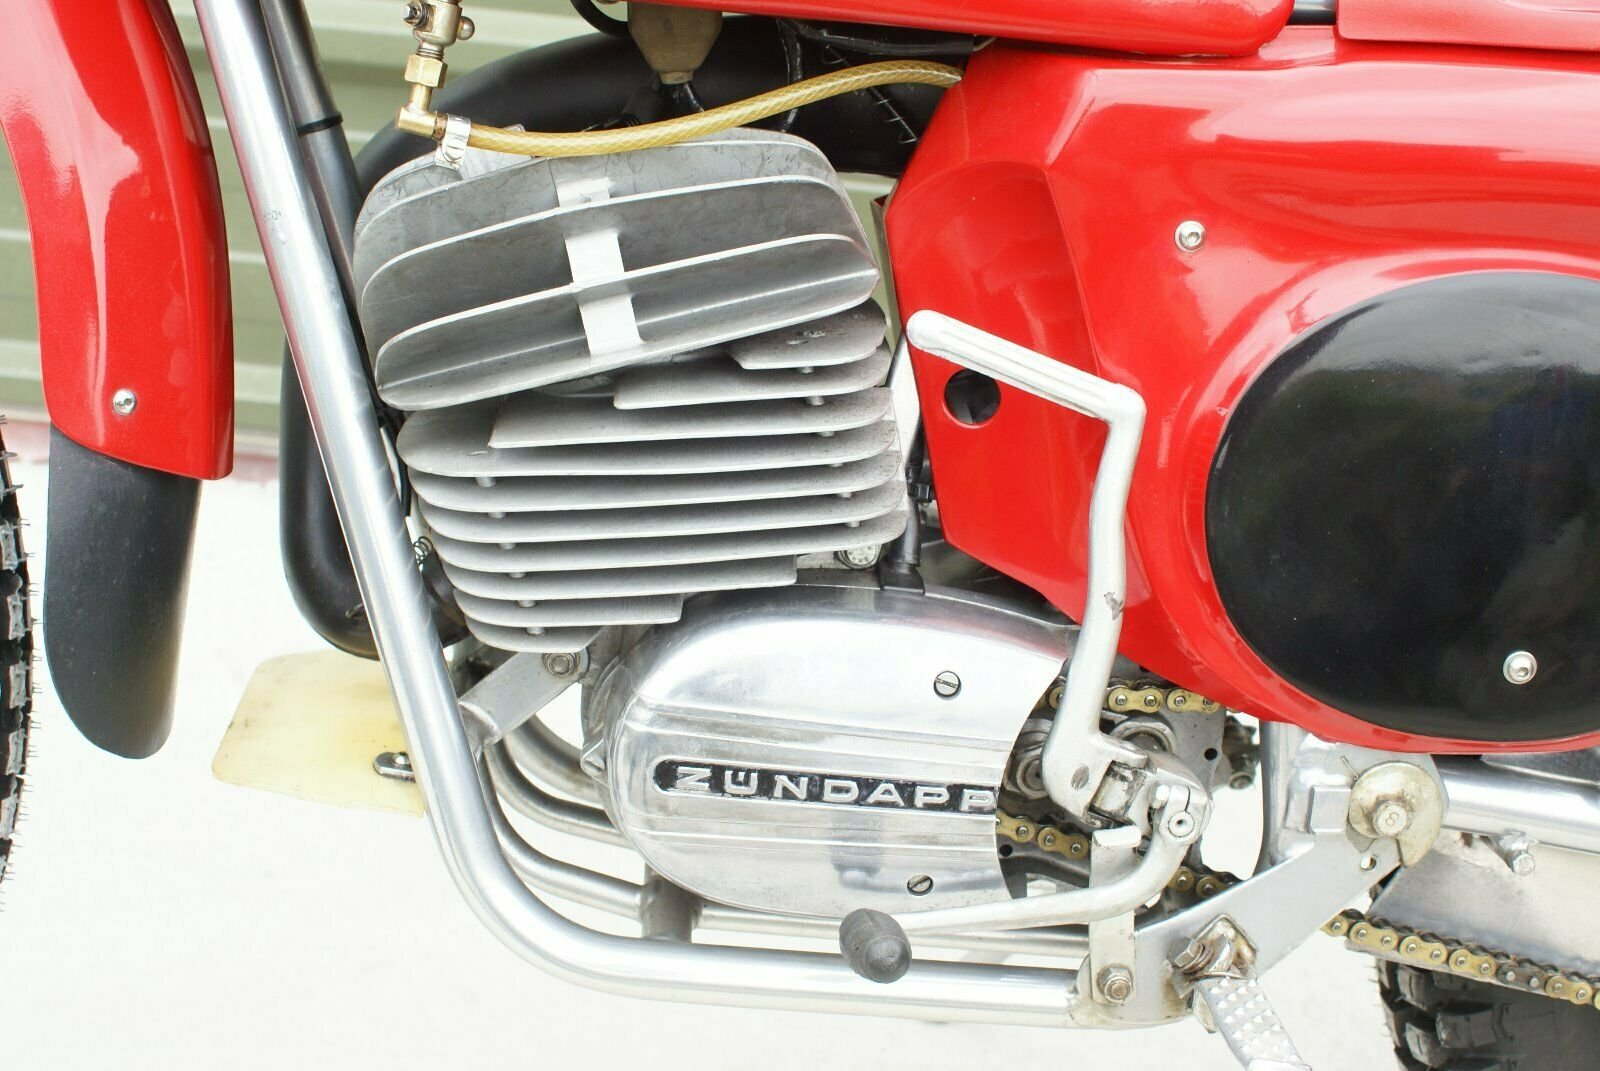 1974 Rickman Metisse 125 ISDT Six-Day  For Sale (picture 3 of 6)